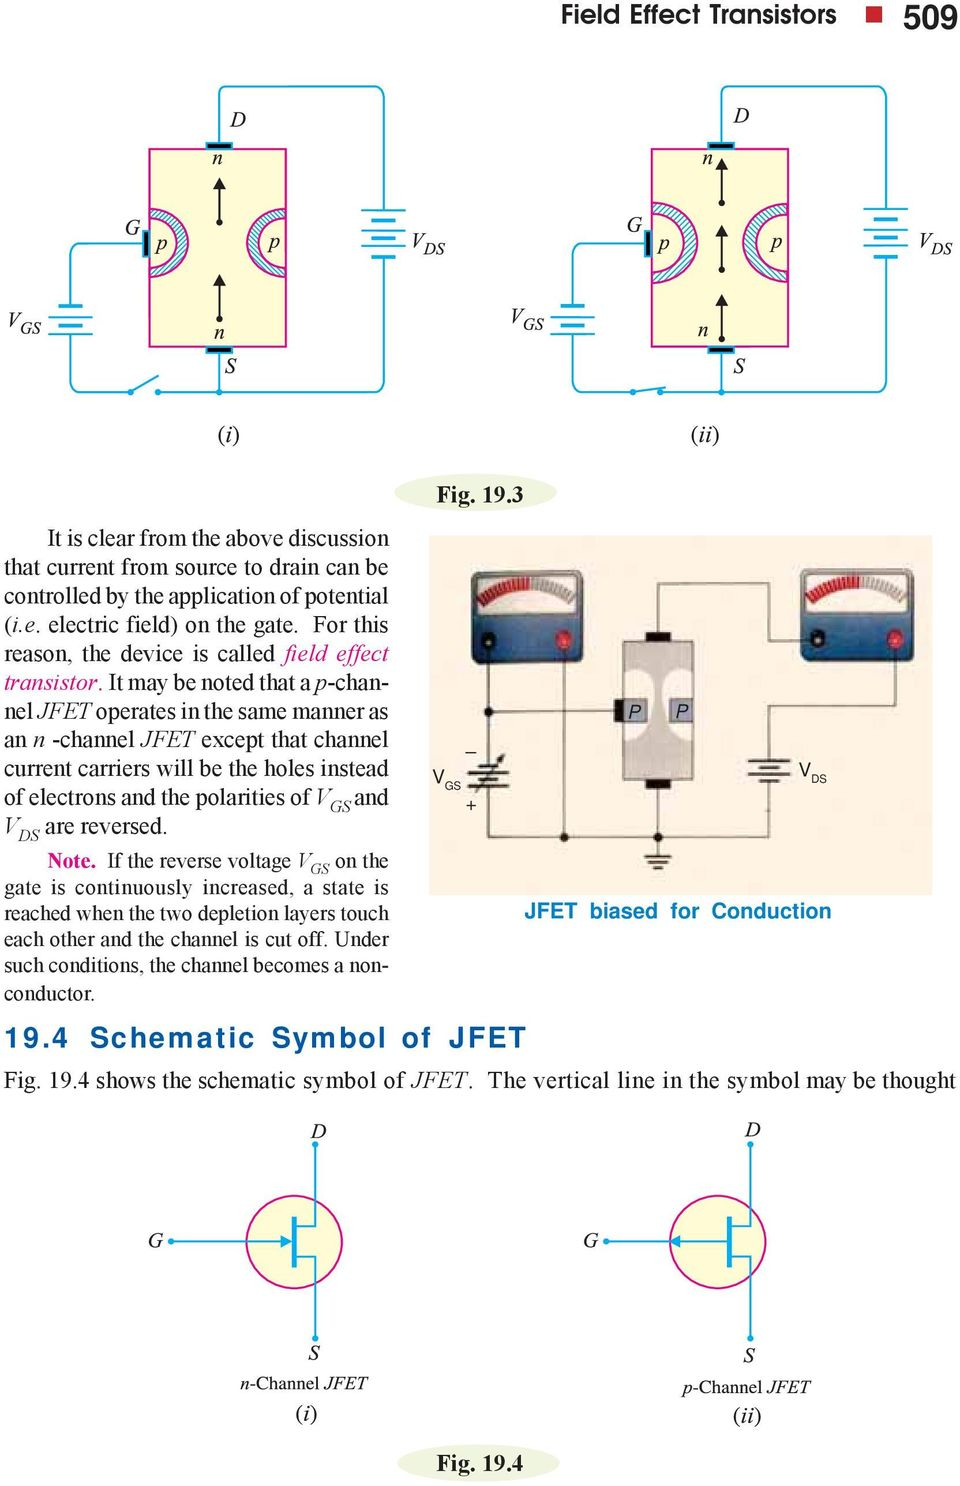 Field Effect Transistors Pdf Regulator With A Transistor Power Supply Circuits Electrons And The Polarities Of Ds Are Reversed Note If Reverse Voltage On